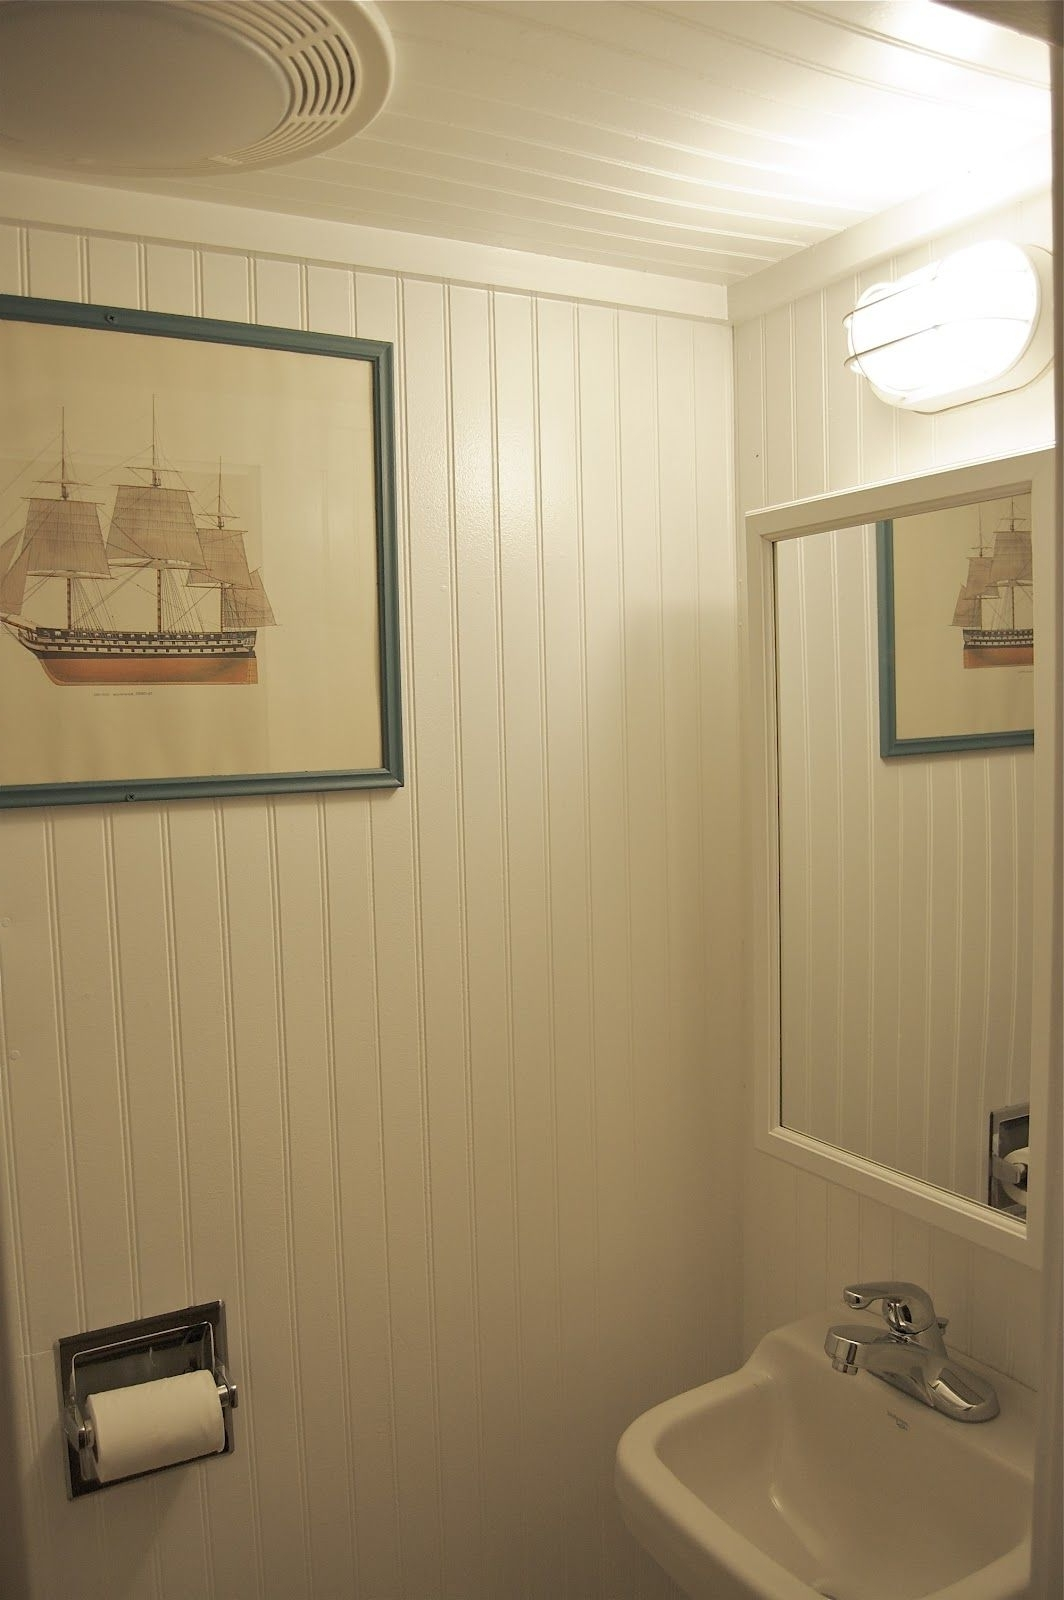 Seaside Shelter: Did You Just Size Me Up? | Beadboard 30+ Using Beadboard In A Small Bathroom Ideas